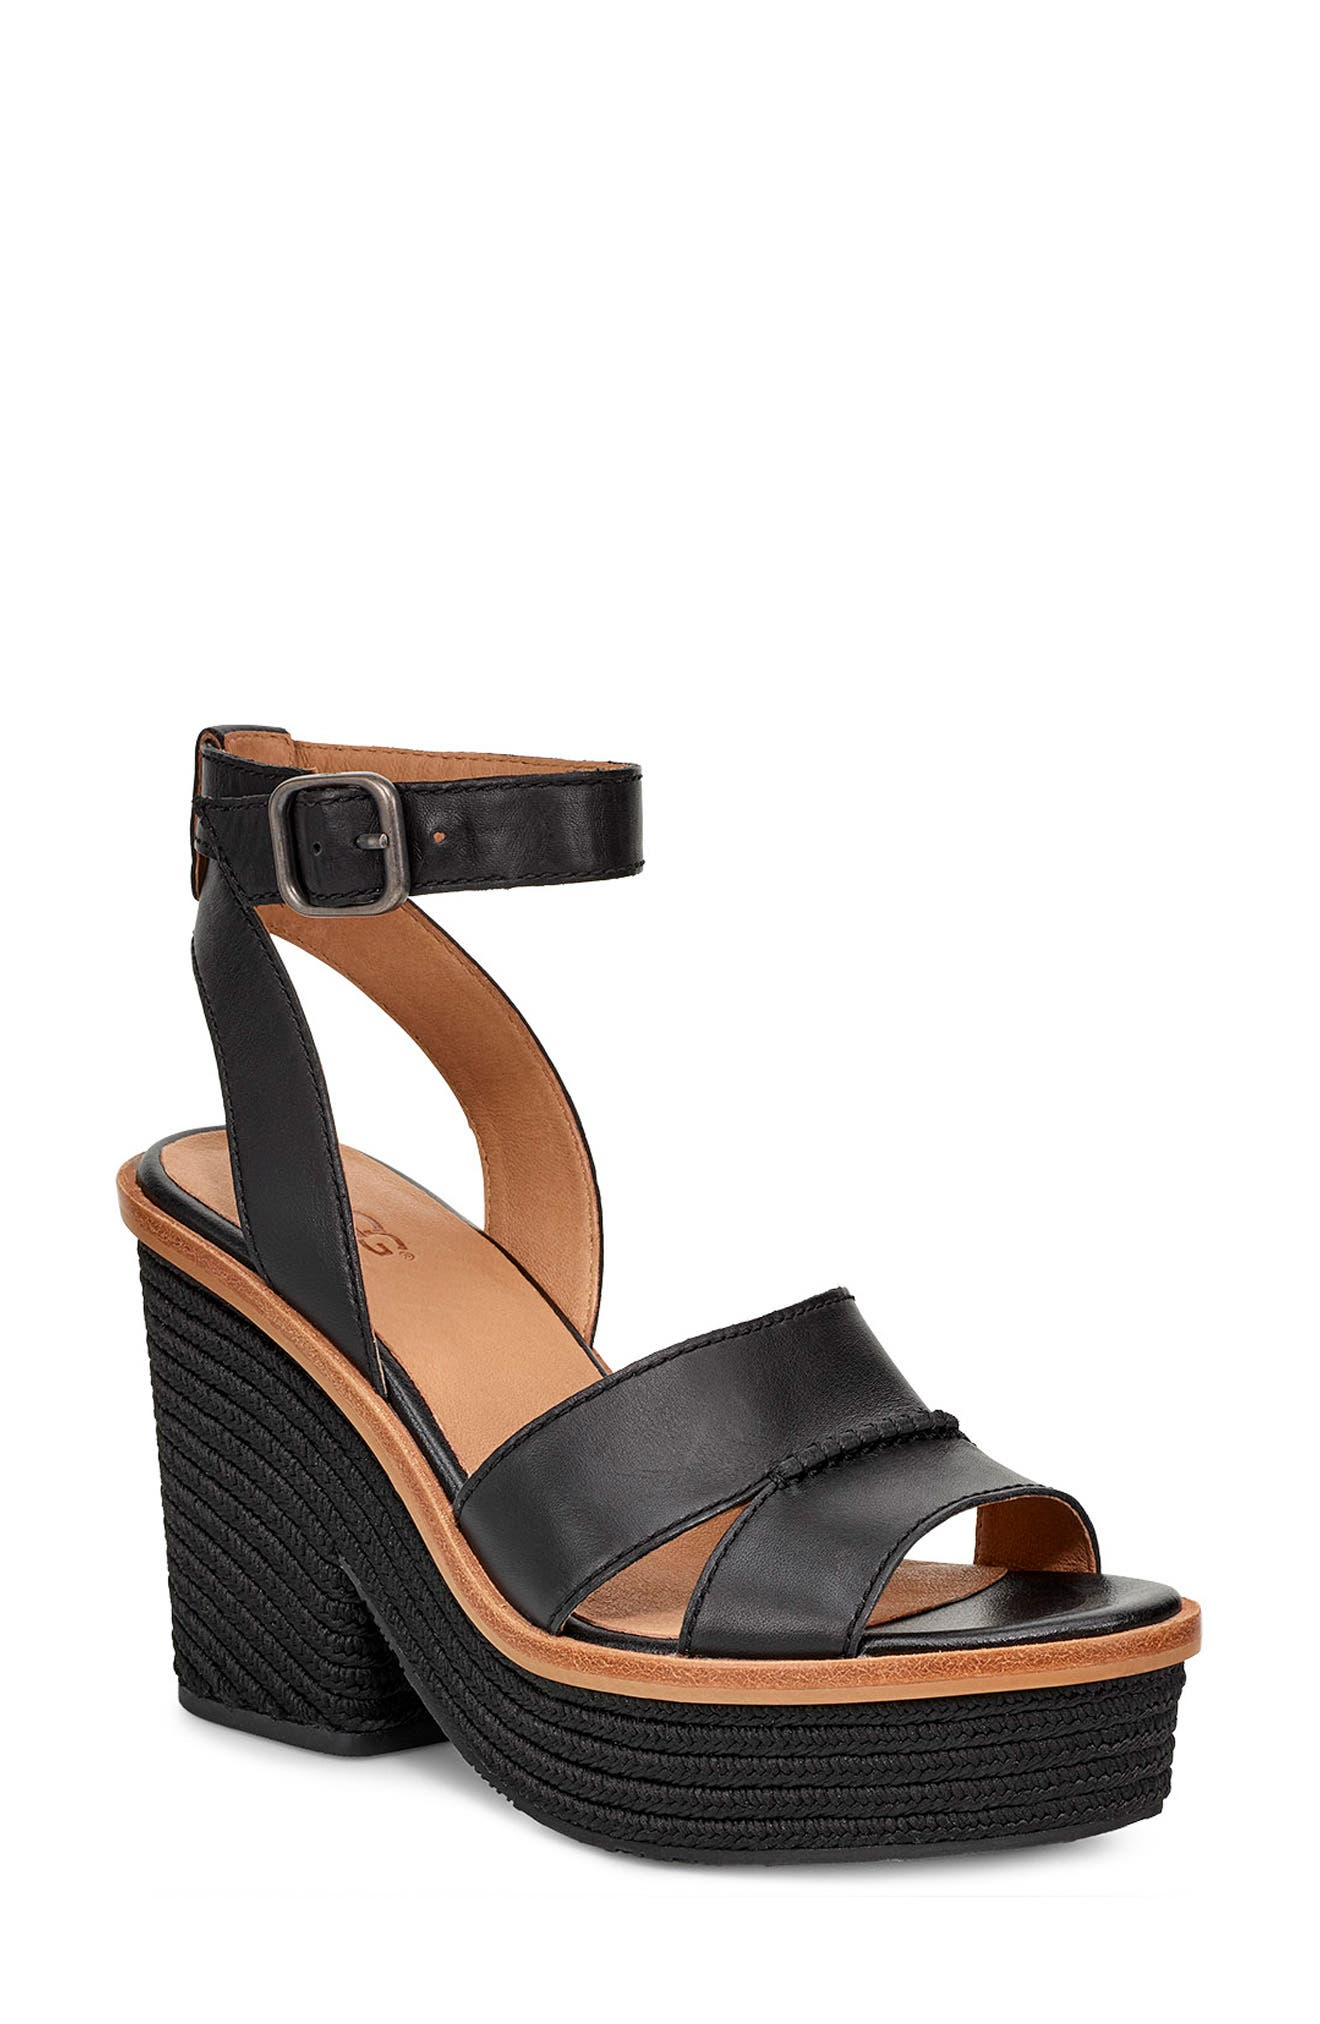 Carine Platform Sandal,                             Main thumbnail 1, color,                             BLACK LEATHER